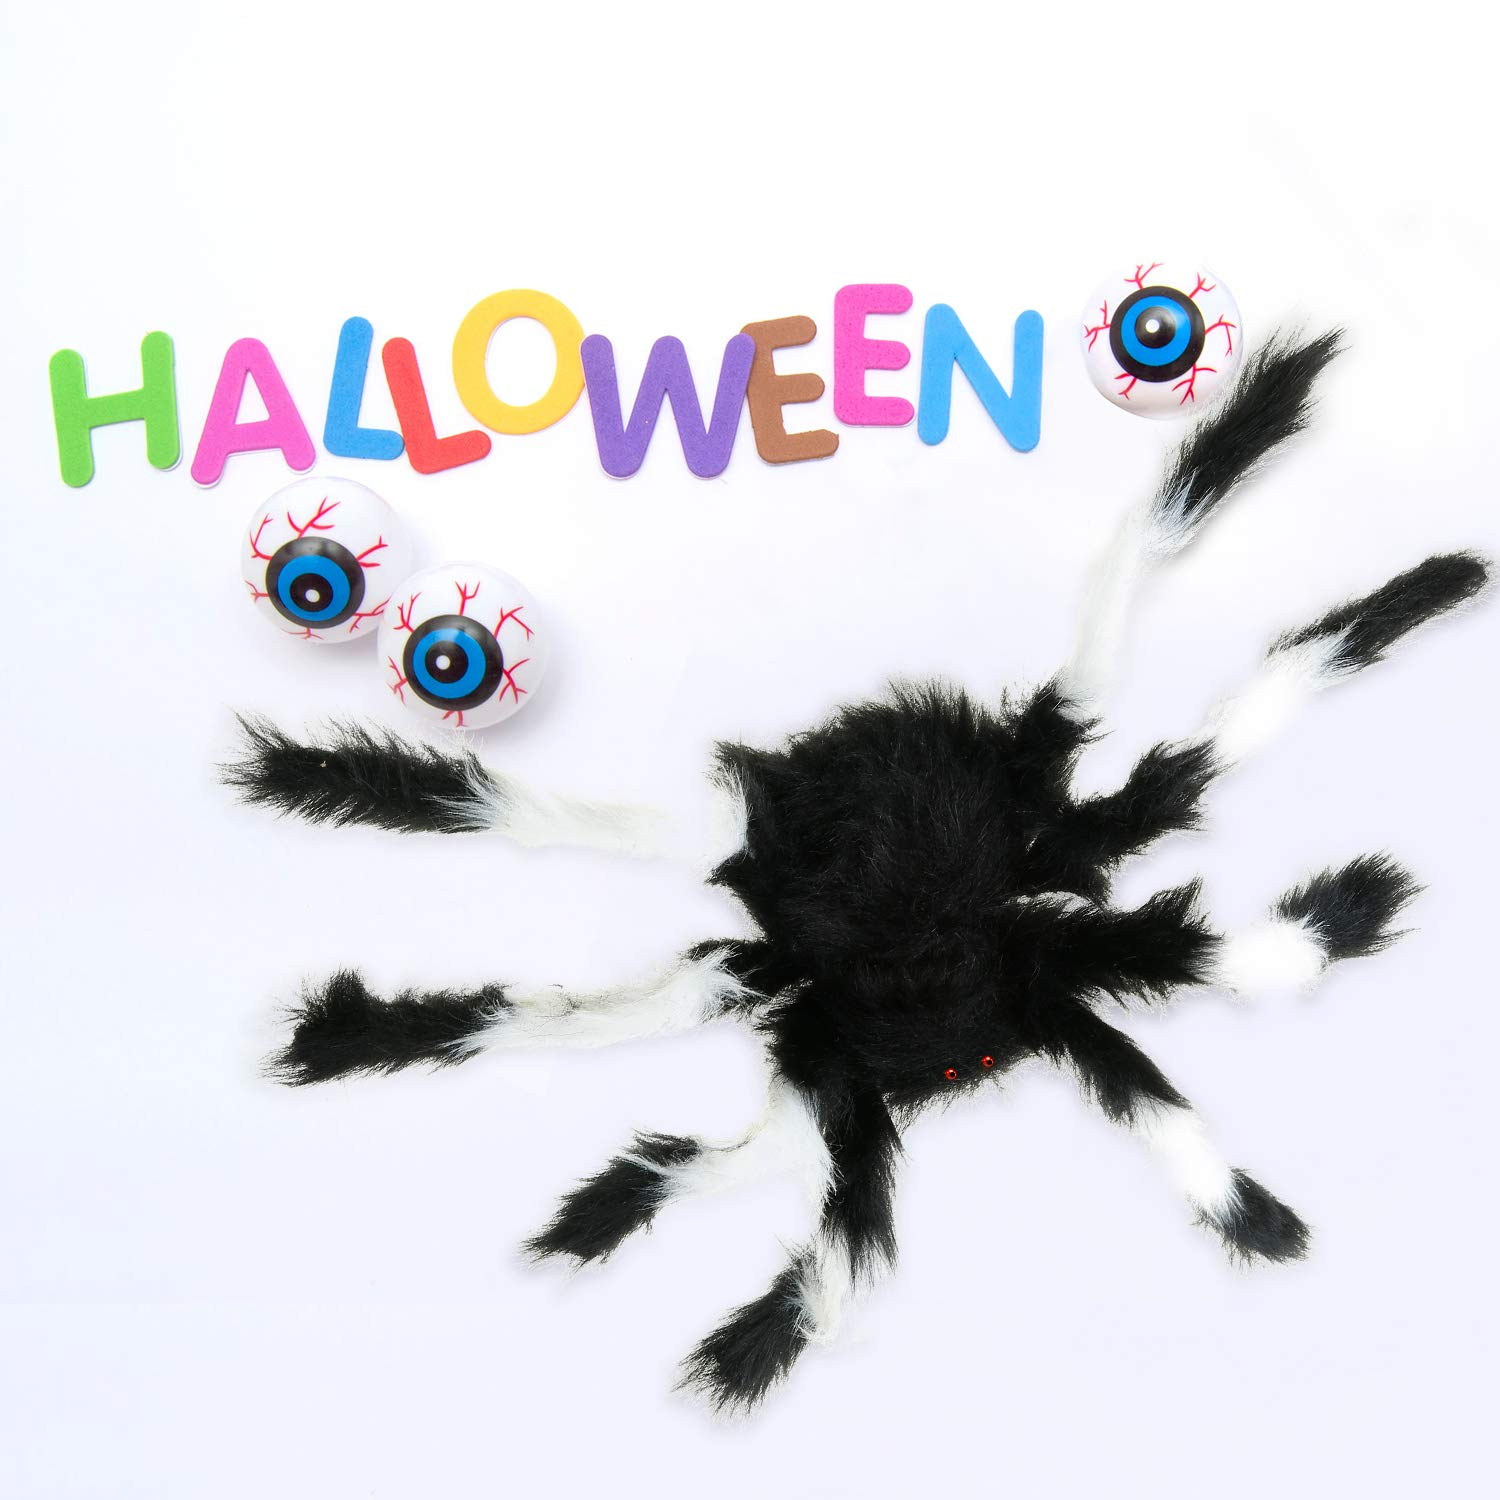 Gejoy Fake Spiders Plush Spiders Realistic Looking Spiders Hairy Spiders for Halloween Party Favors Decoration Props Black and White, Black and Orange